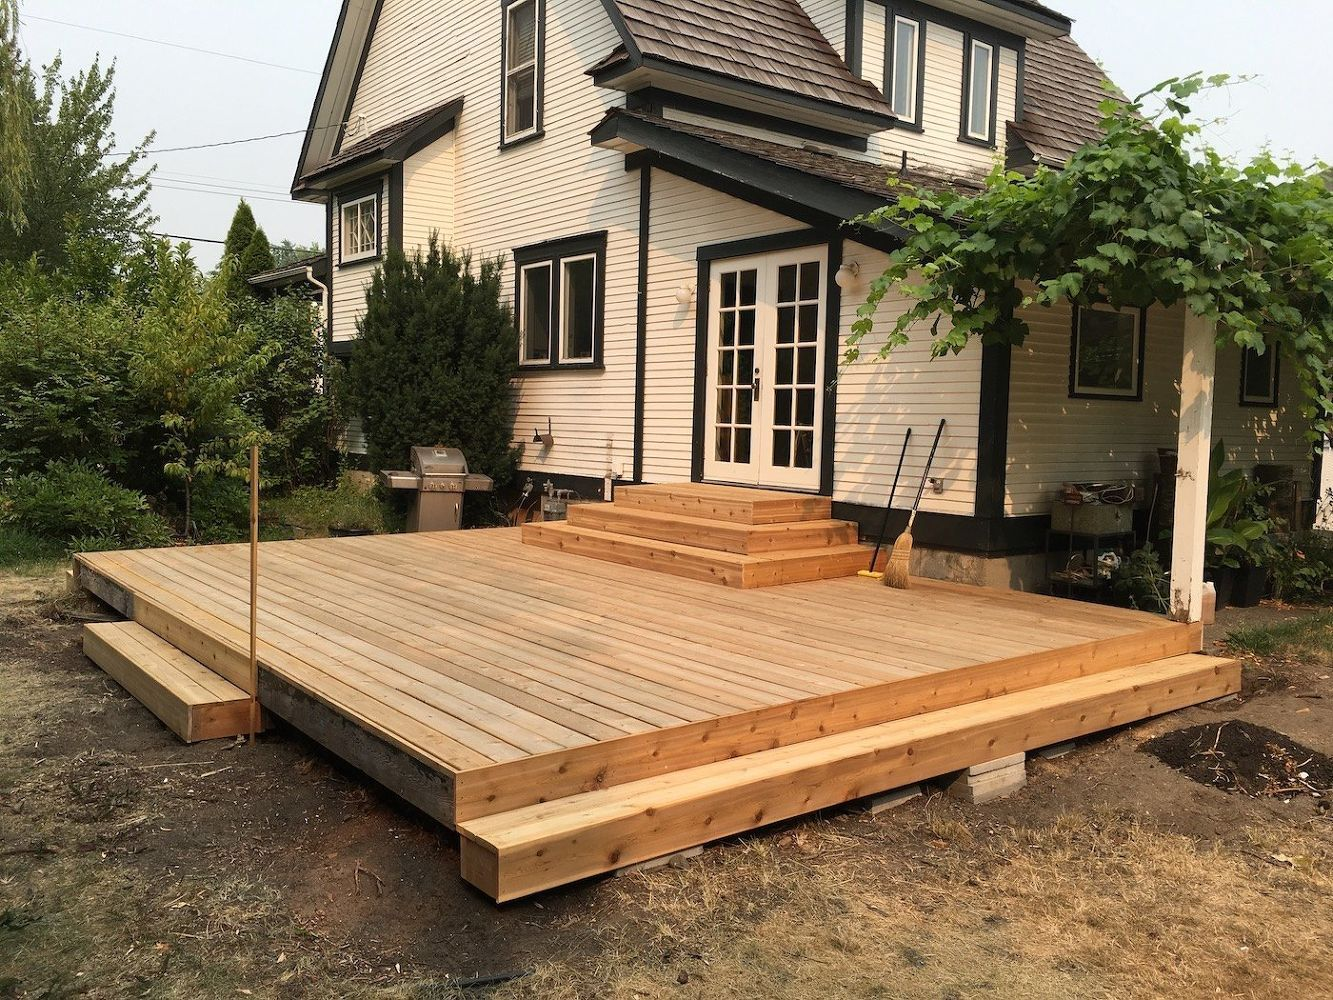 How To Build A Cedar Deck Remodel With New Planter Box Benches Diy